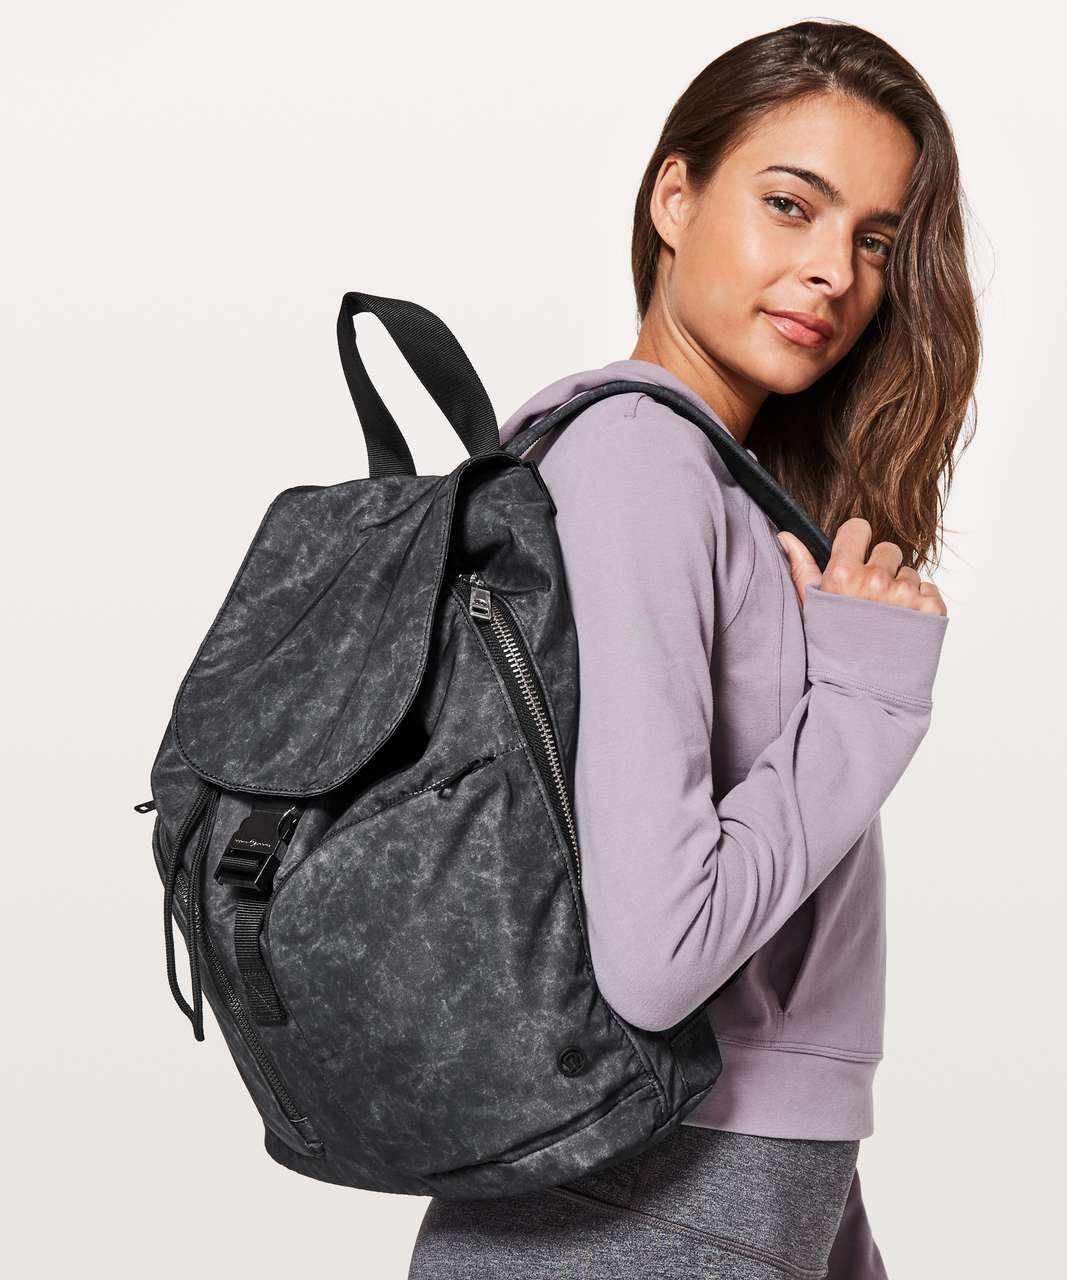 Lululemon Carry Onward Rucksack *12L - Gravel Dust Ice Grey Nebula